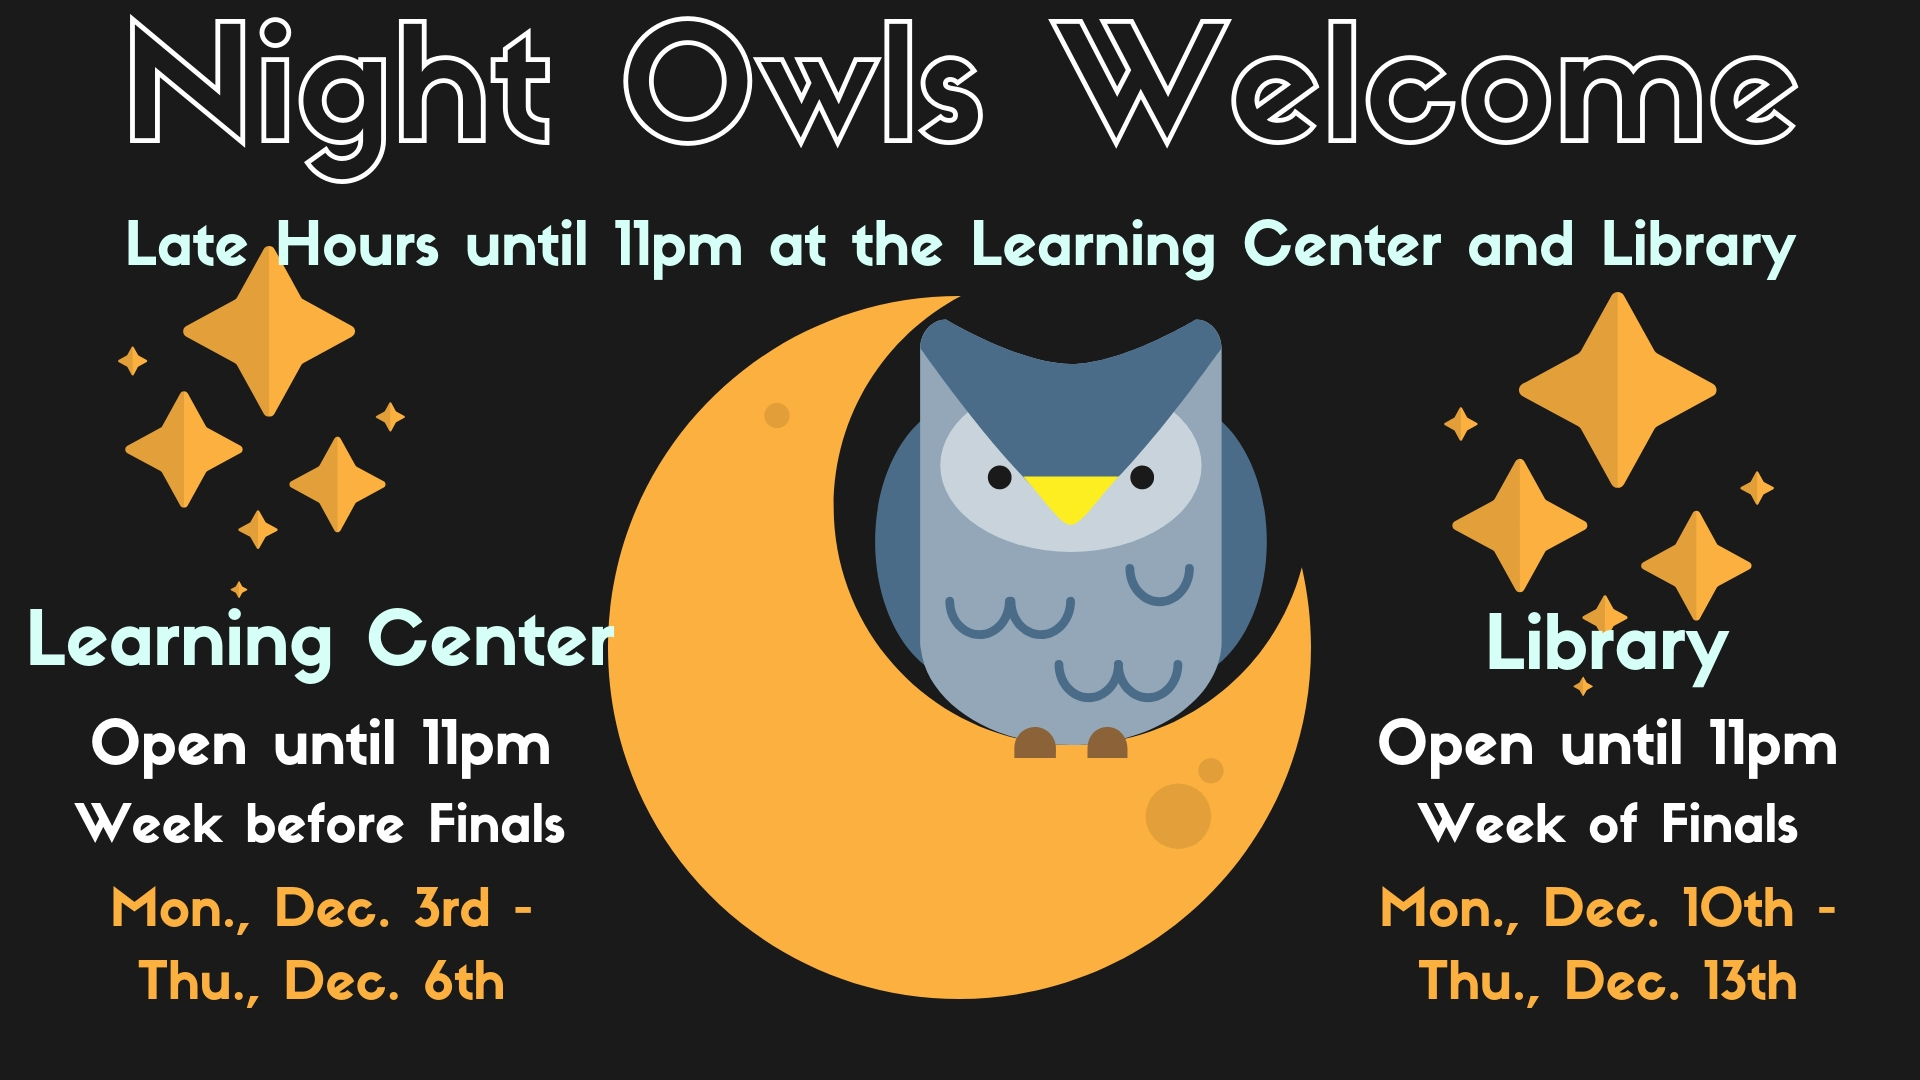 Night Owls Welcome